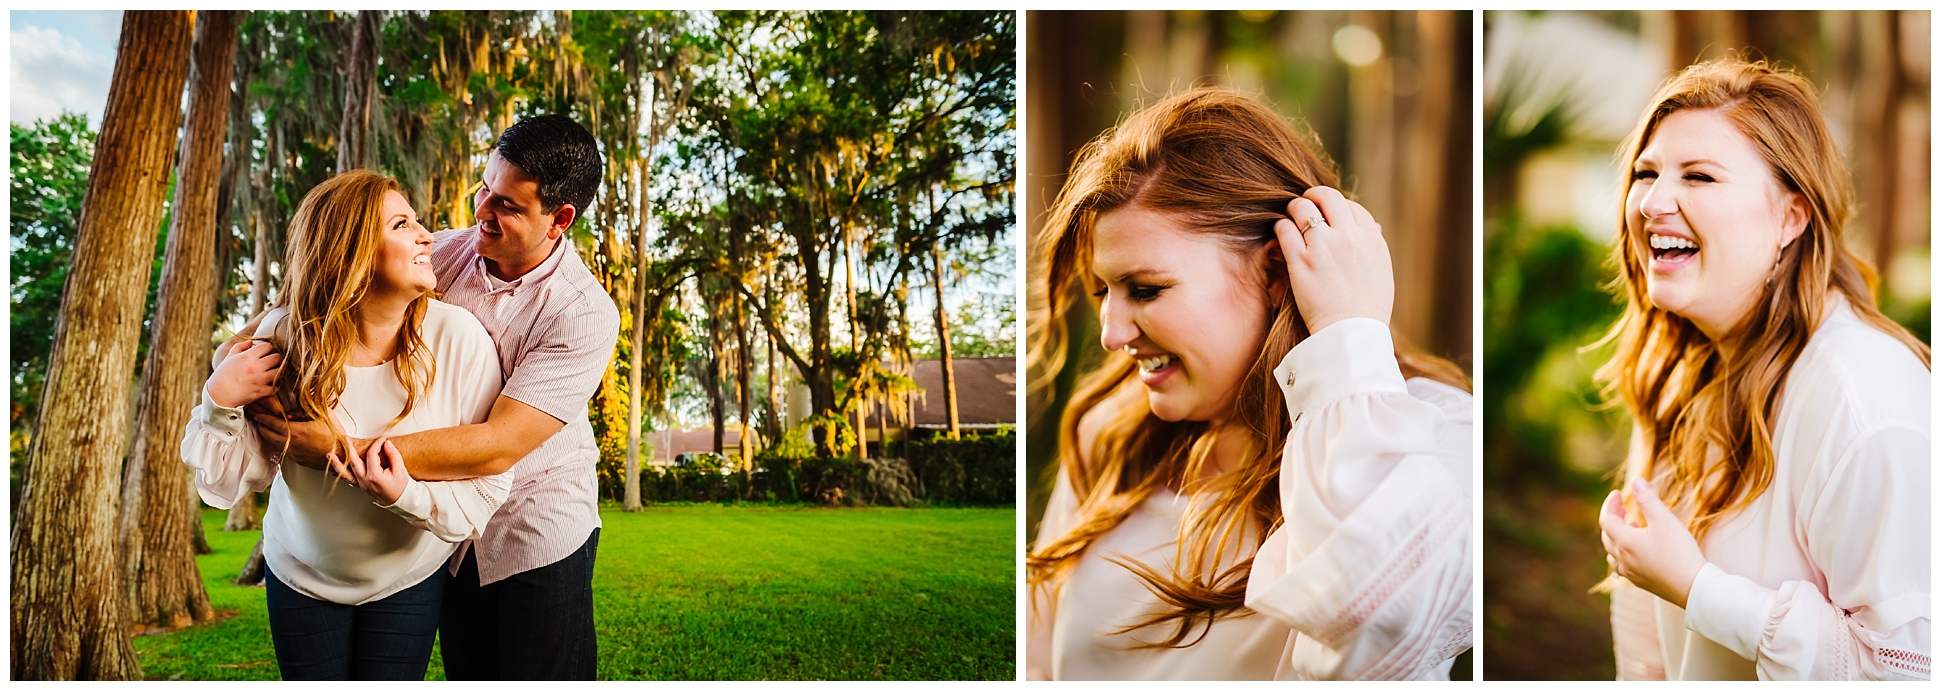 at-home-carrollwood-engagement-photos-tampa_0090.jpg